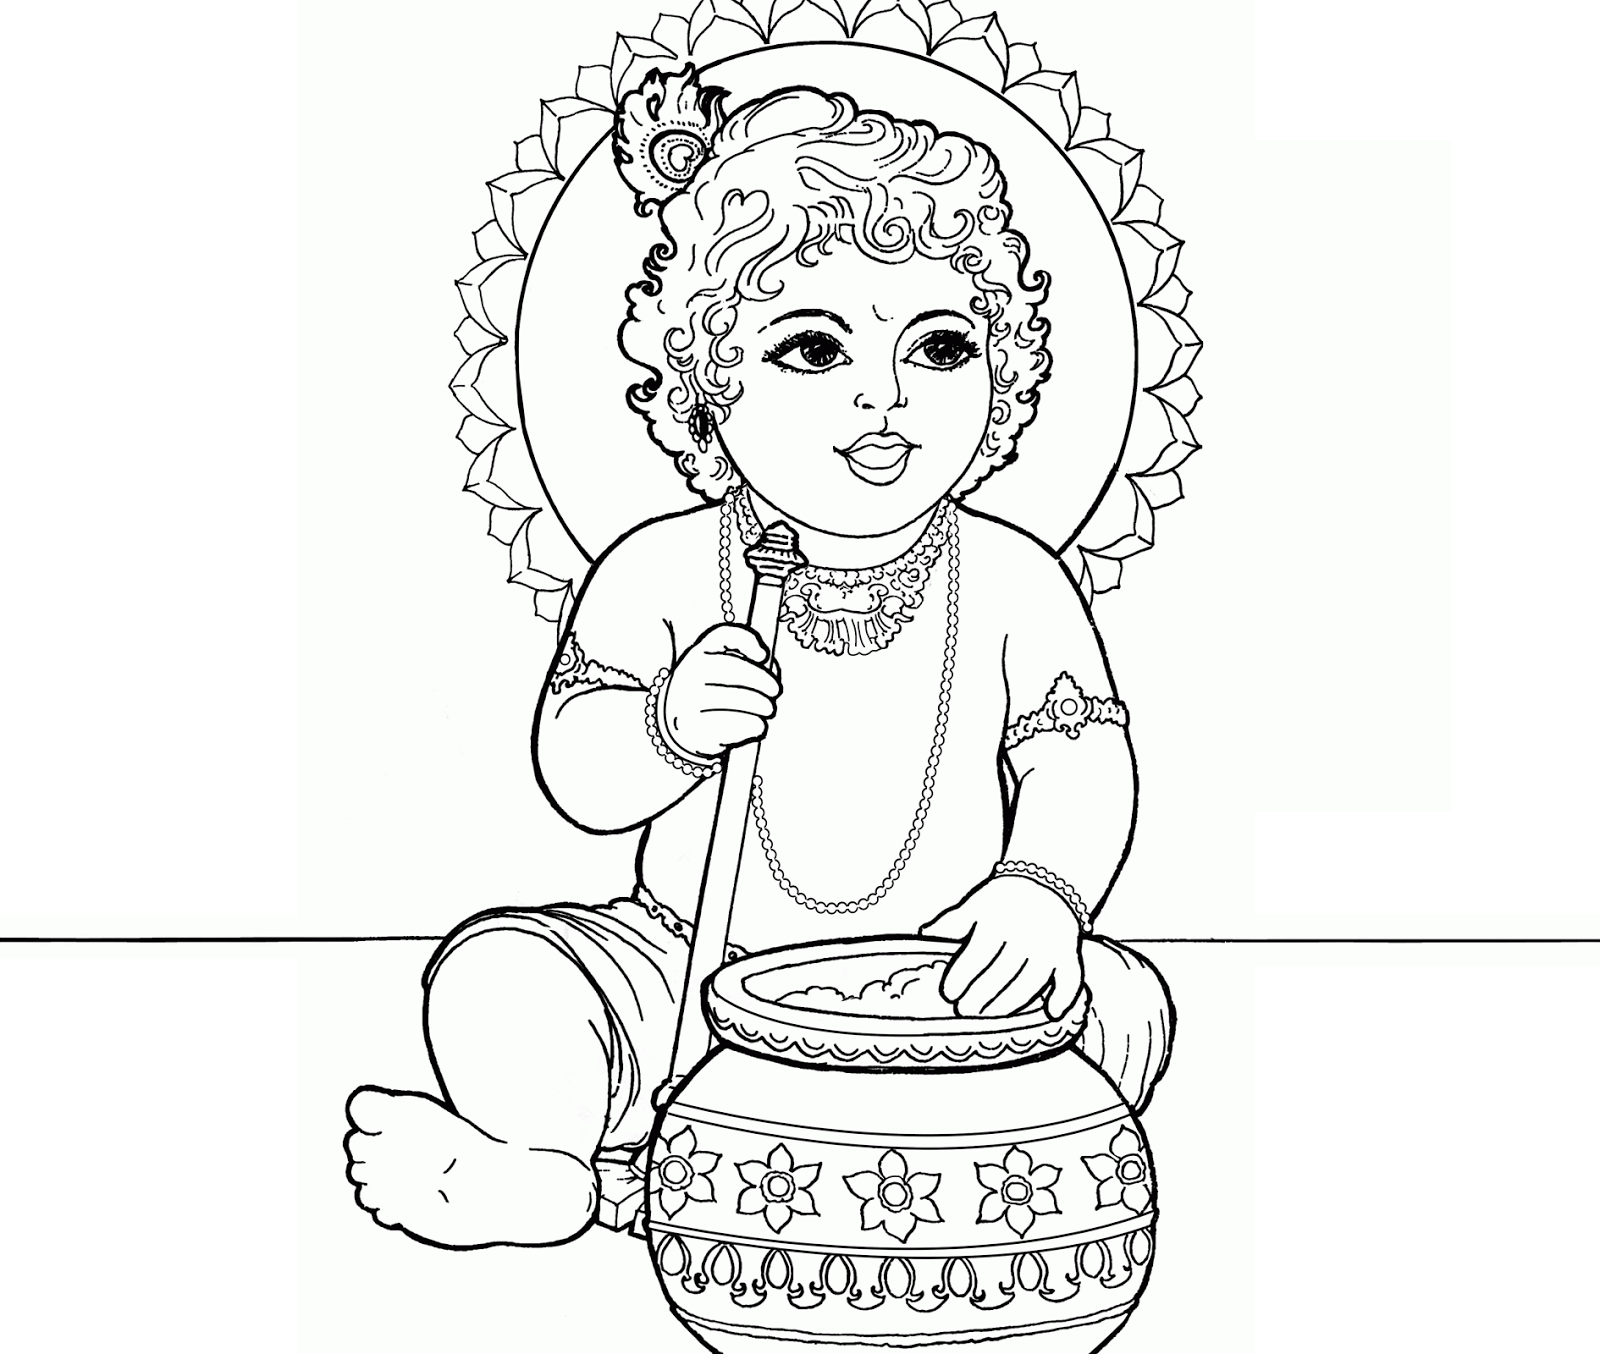 krishna coloring - Google Search | ADULT COLORING PAGES ...